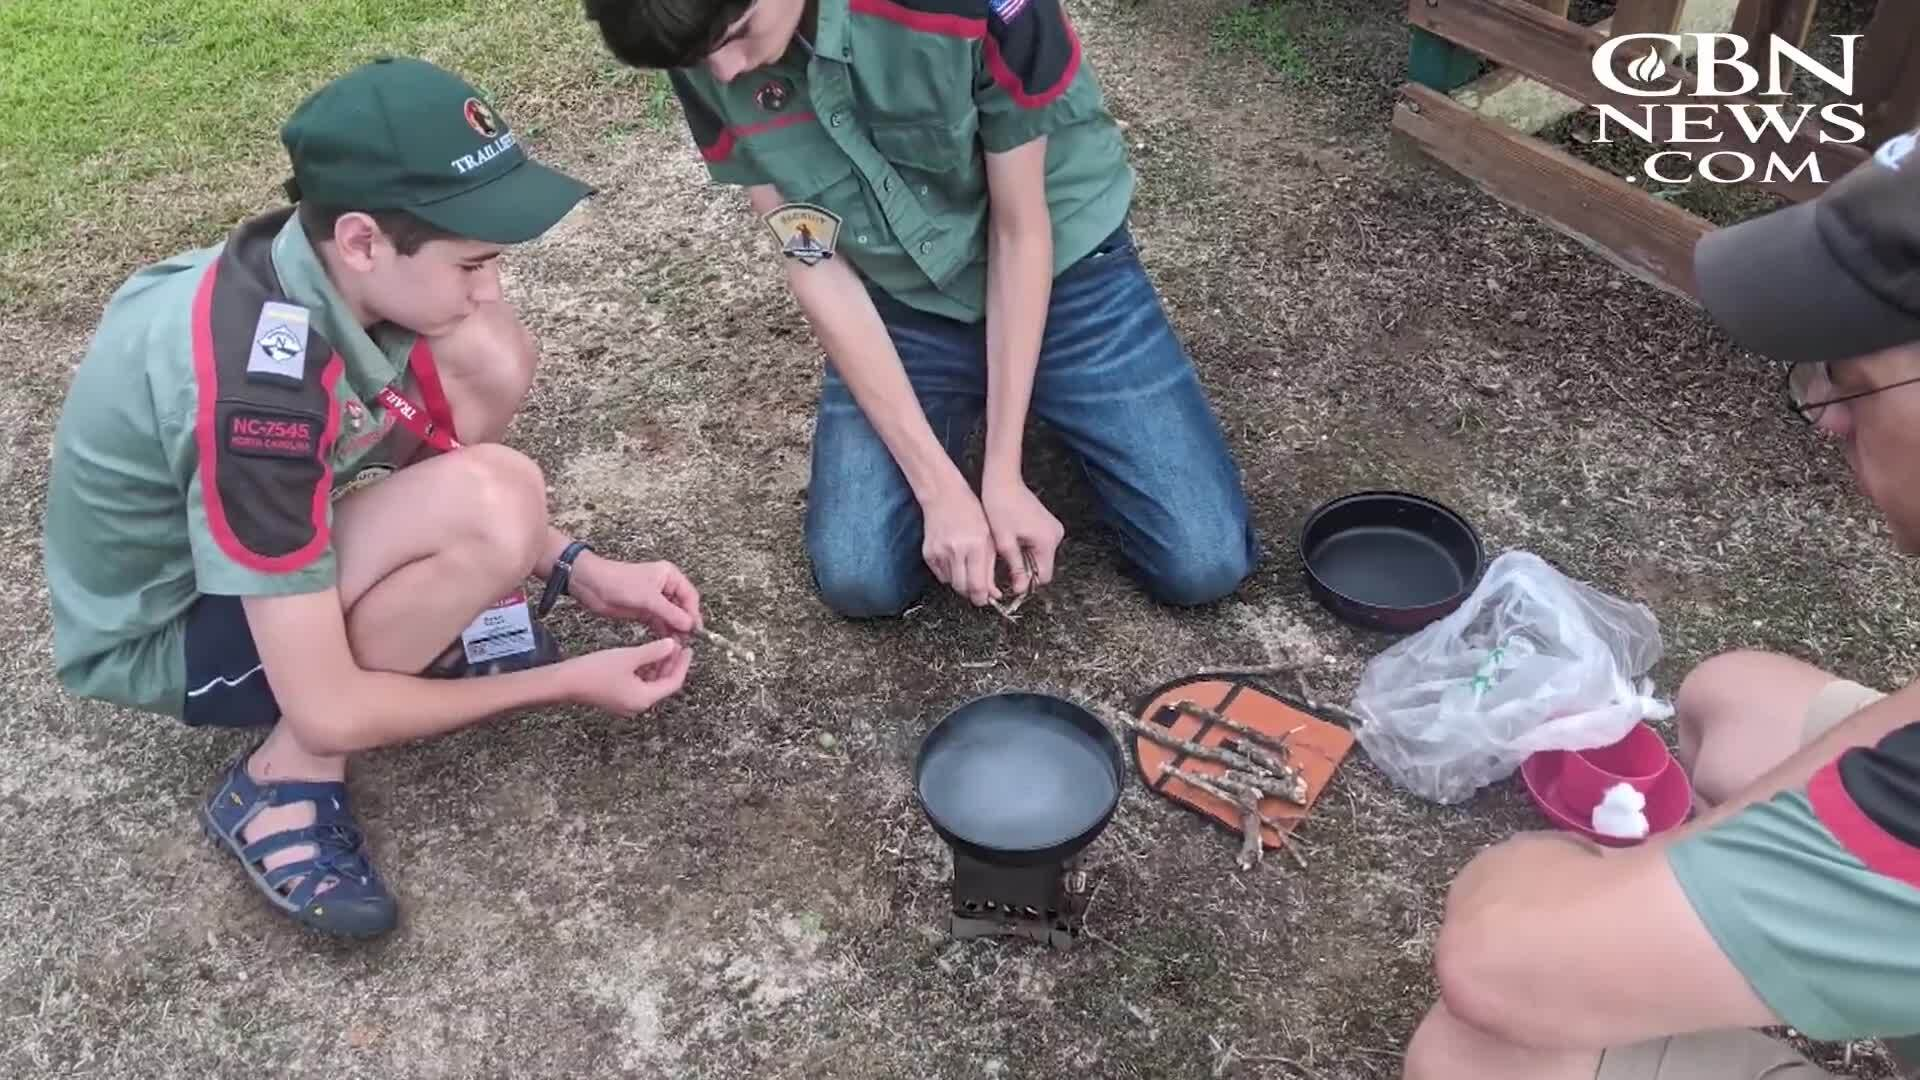 Christian Alternatives to Boy Scouts and Girl Scouts See Big Increases in Membership